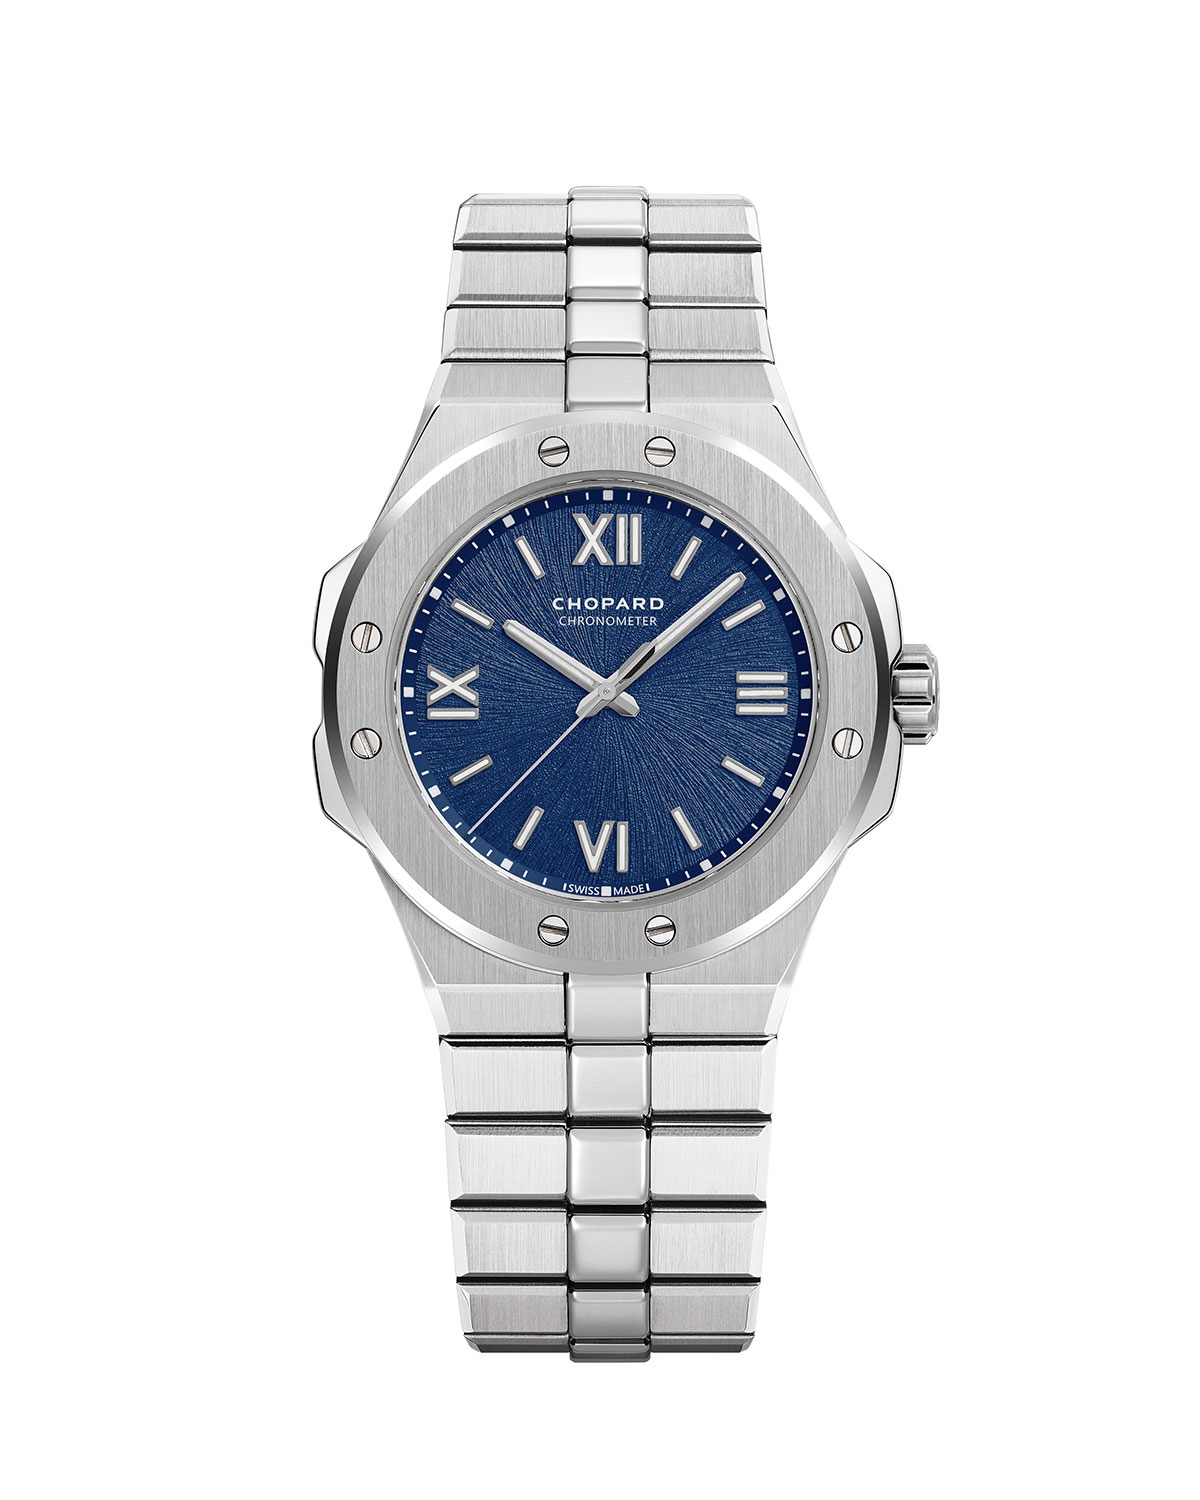 Chopard 36mm Stainless Steel Watch w/ Bracelet Strap, Blue